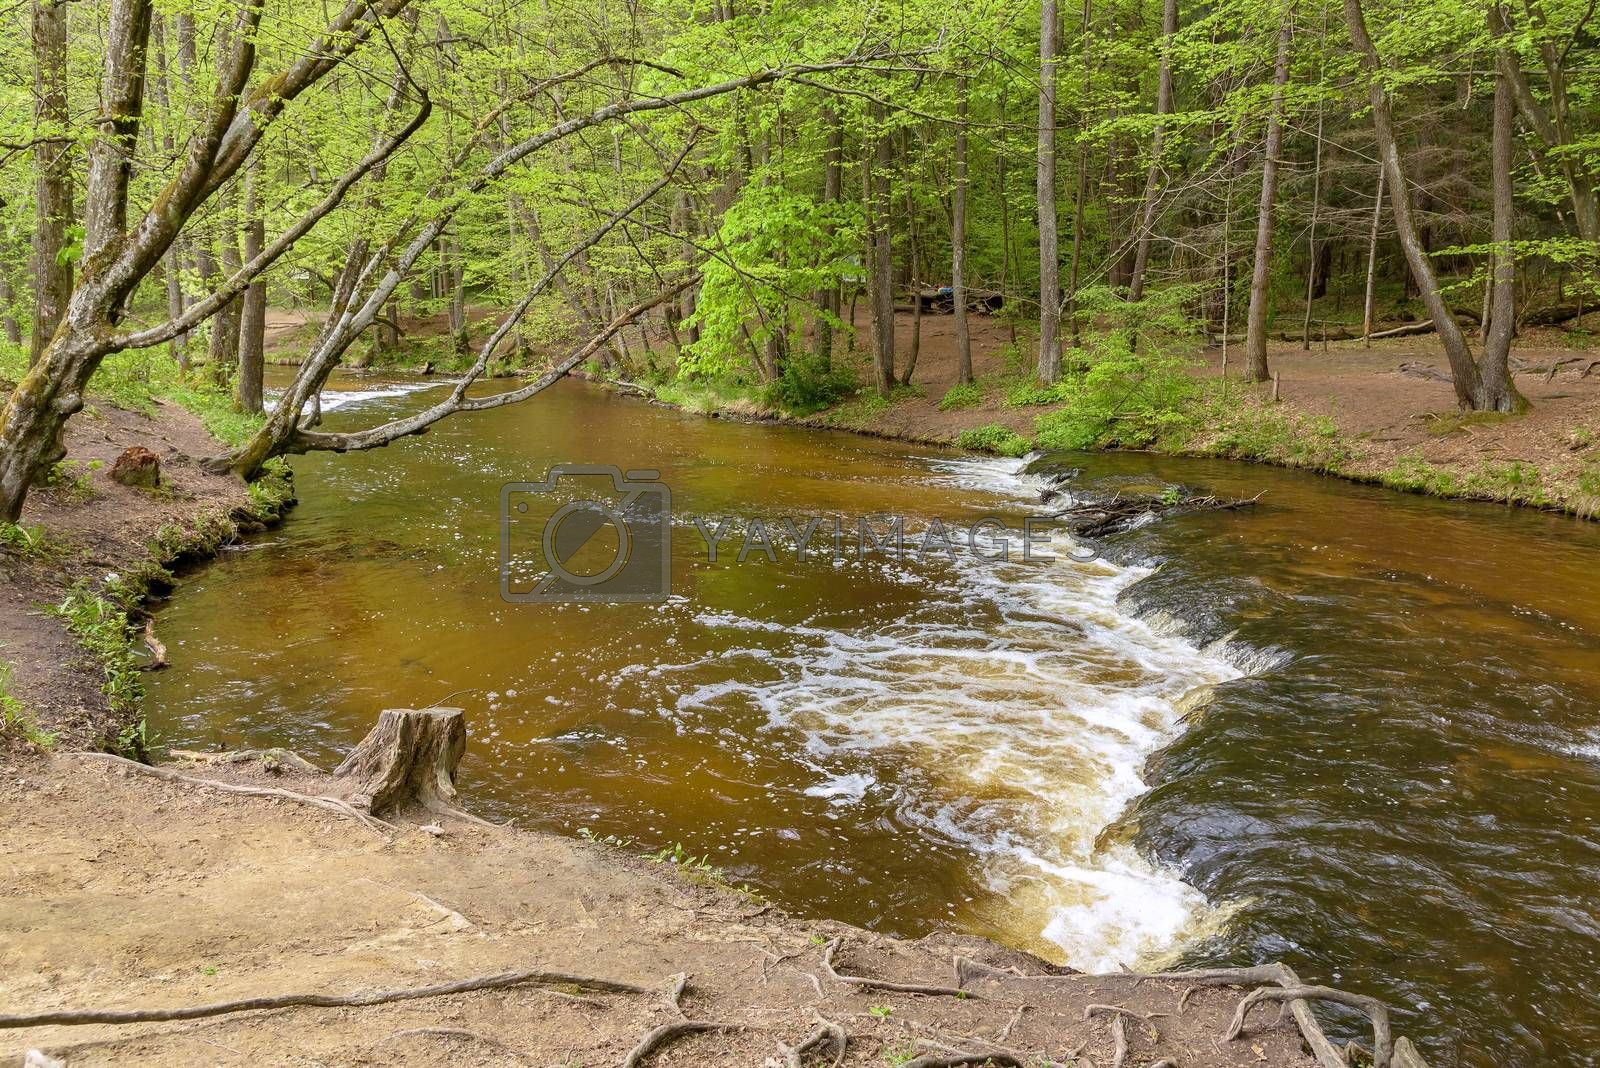 View of cascades on Tanew river in nature reserve Nad Tanwia in eastern Poland